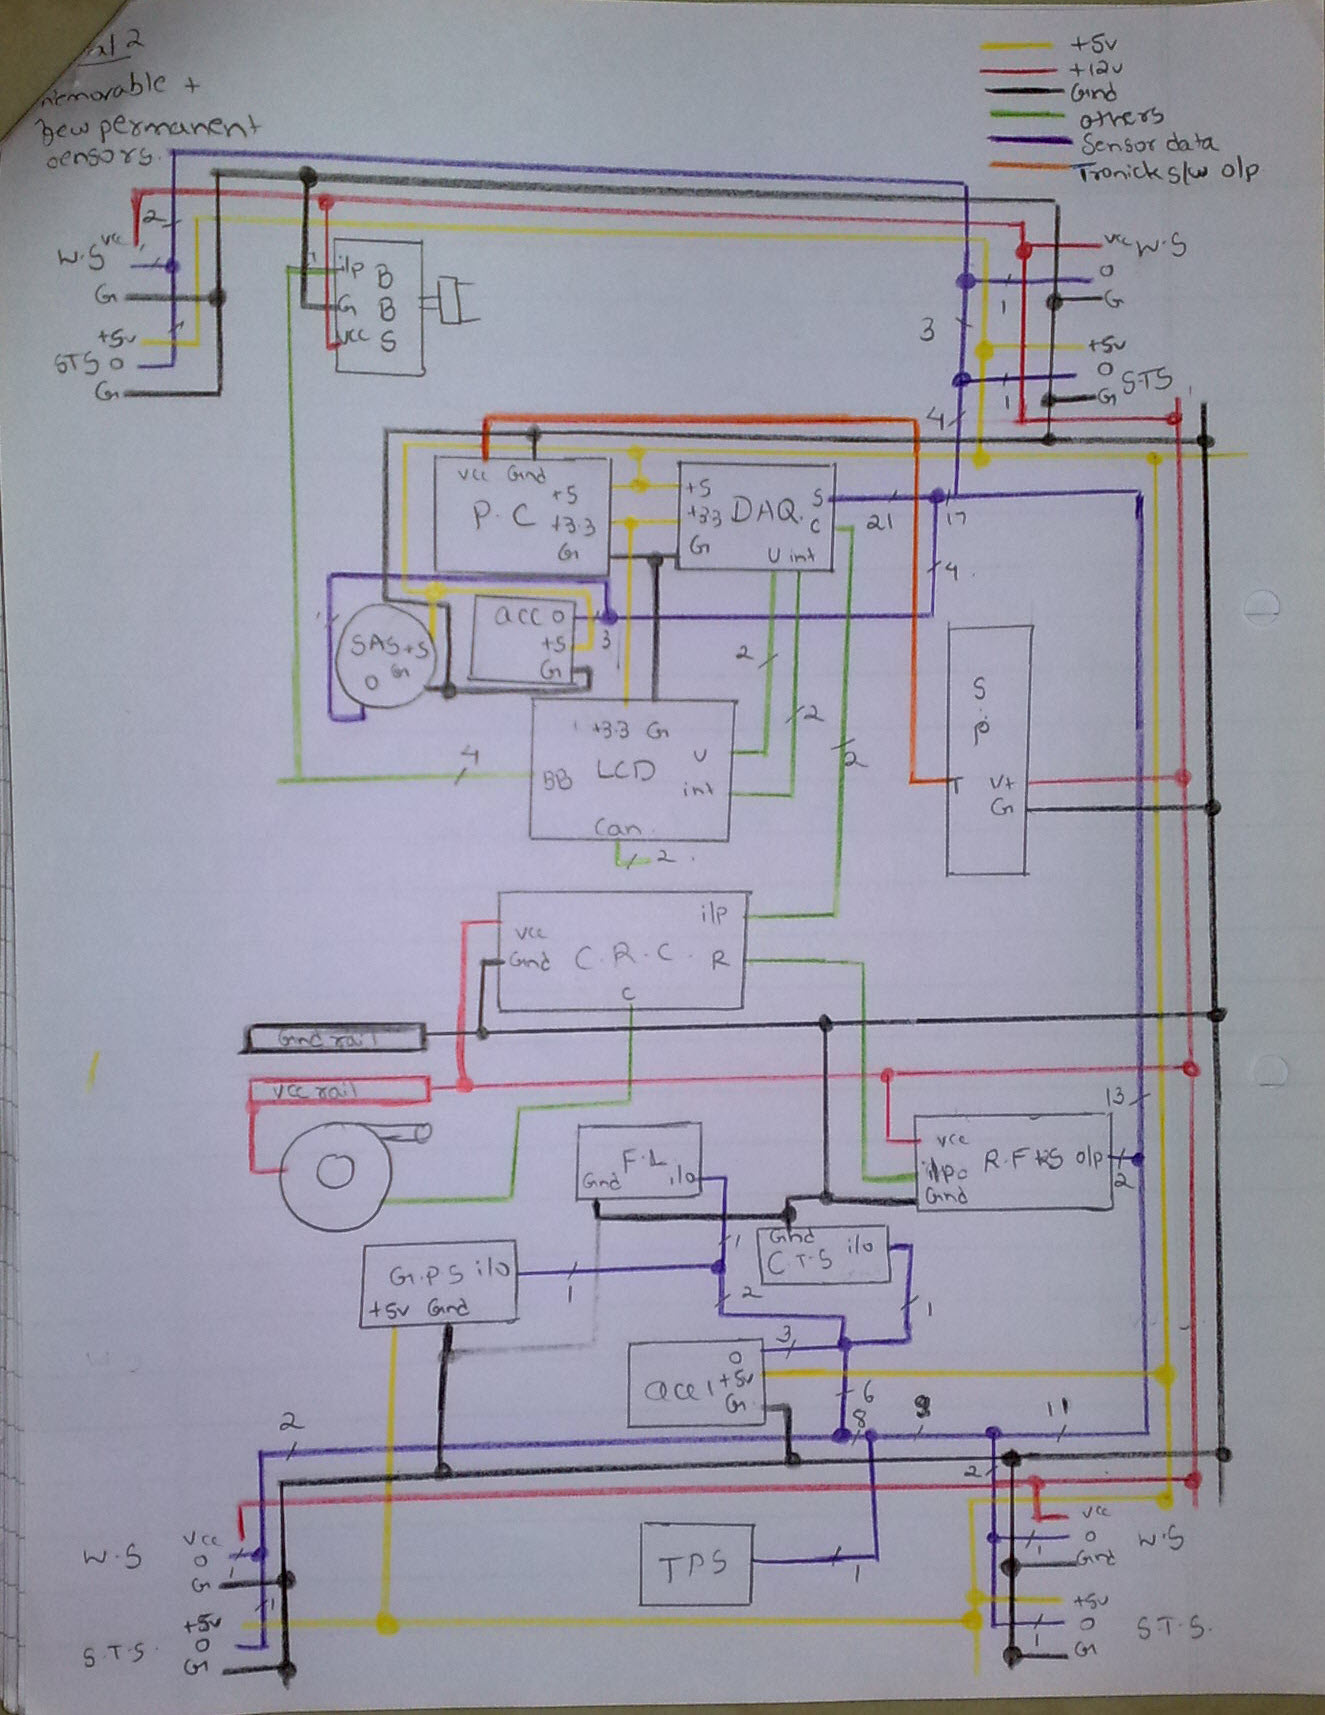 Wiring Diagram Car : Wiring diagrams for a fsae race car ori let s talk